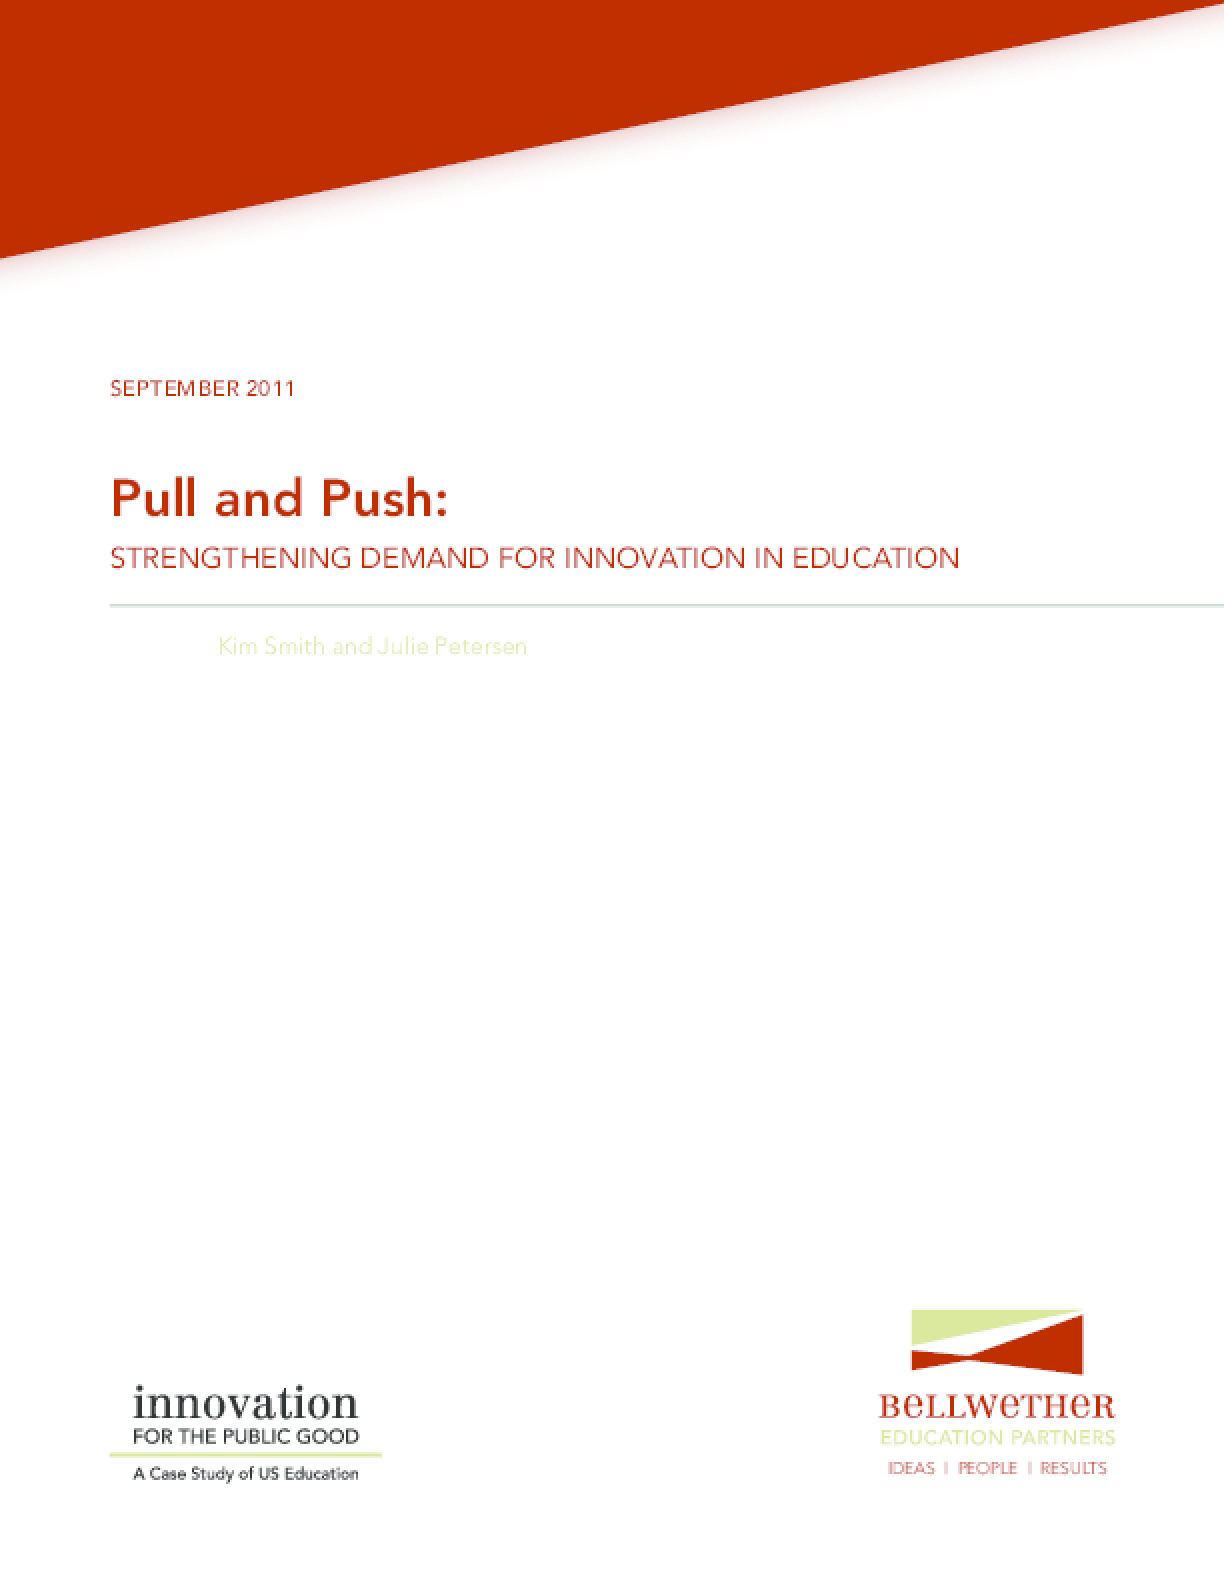 Pull and Push: Strengthening Demand for Innovation in Education